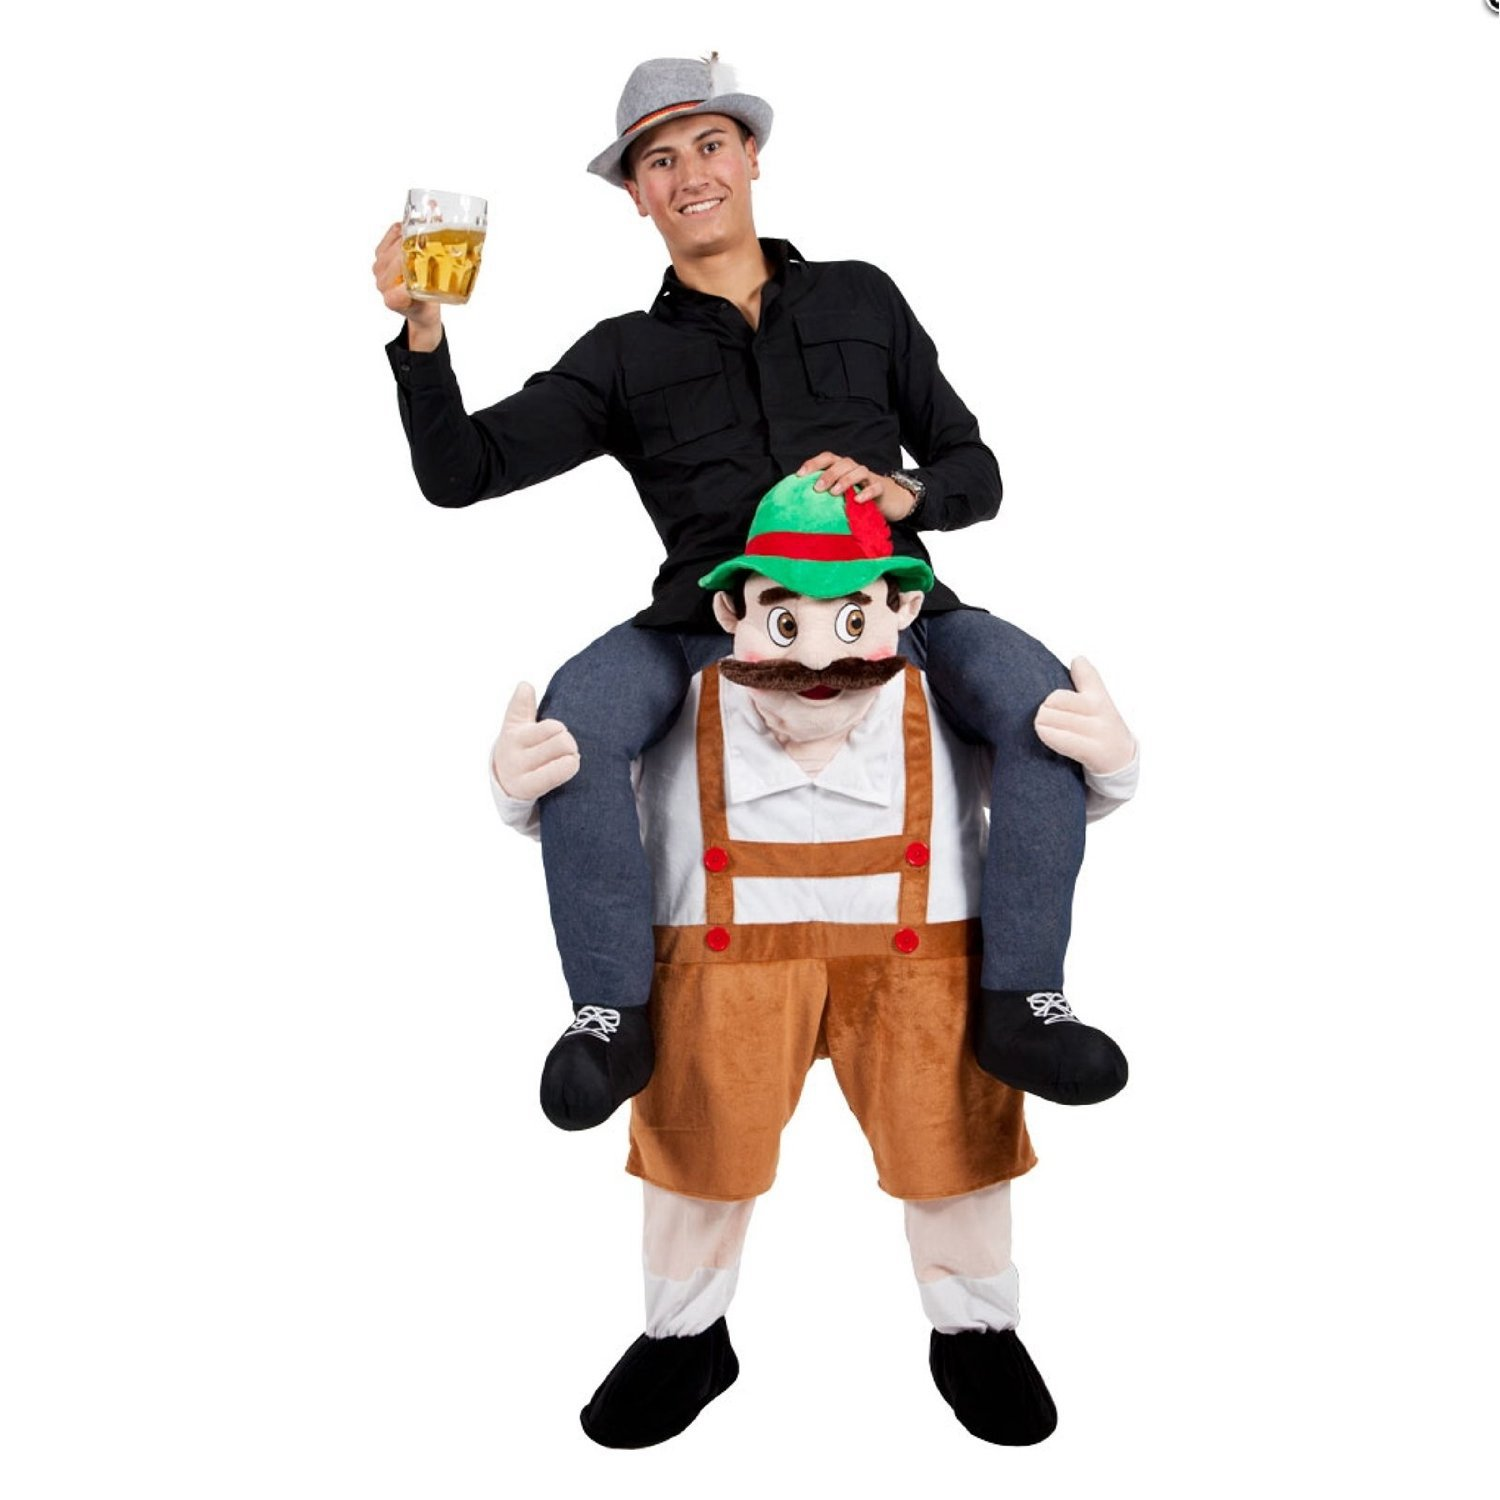 YIAN Carry Me Ride On Riding Shoulder Bavarian Beer Guy Ride Costume Christmas-One Size(Ship by DHL)